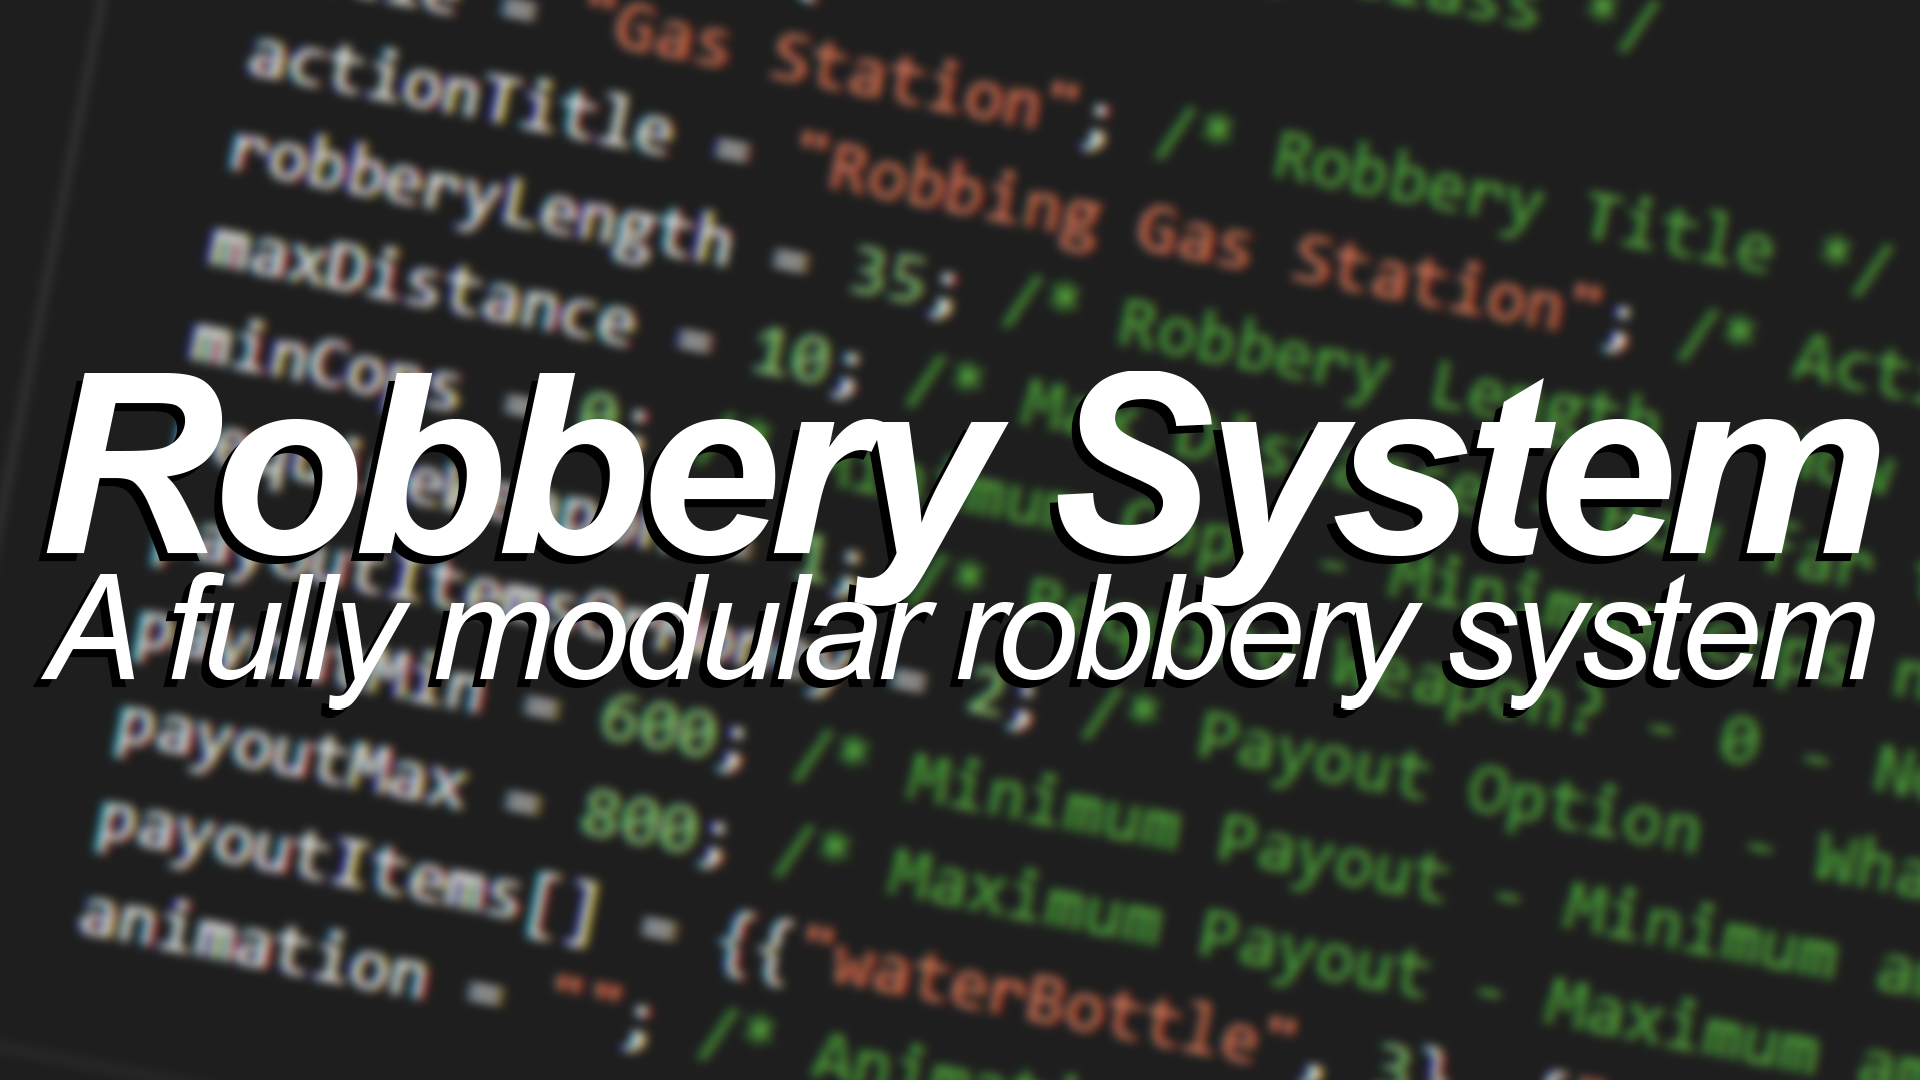 Robbery System